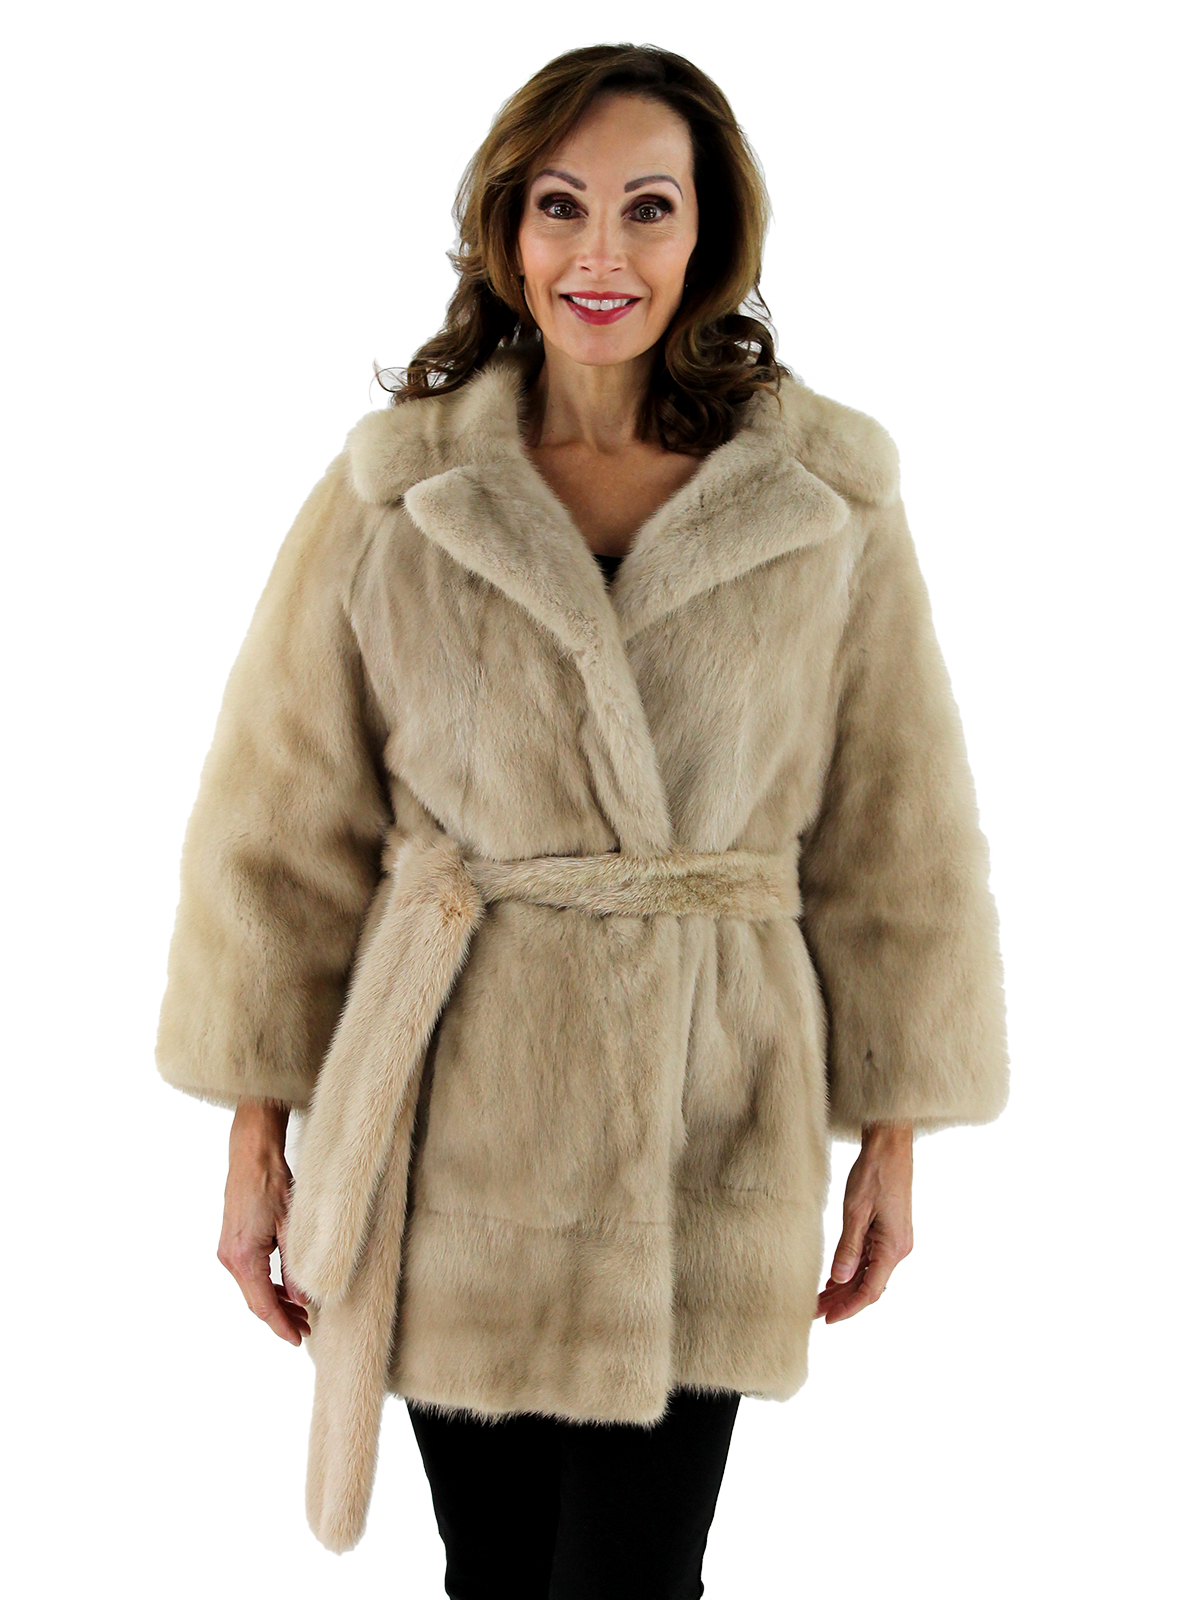 Woman's Azurene Mink Fur Jacket